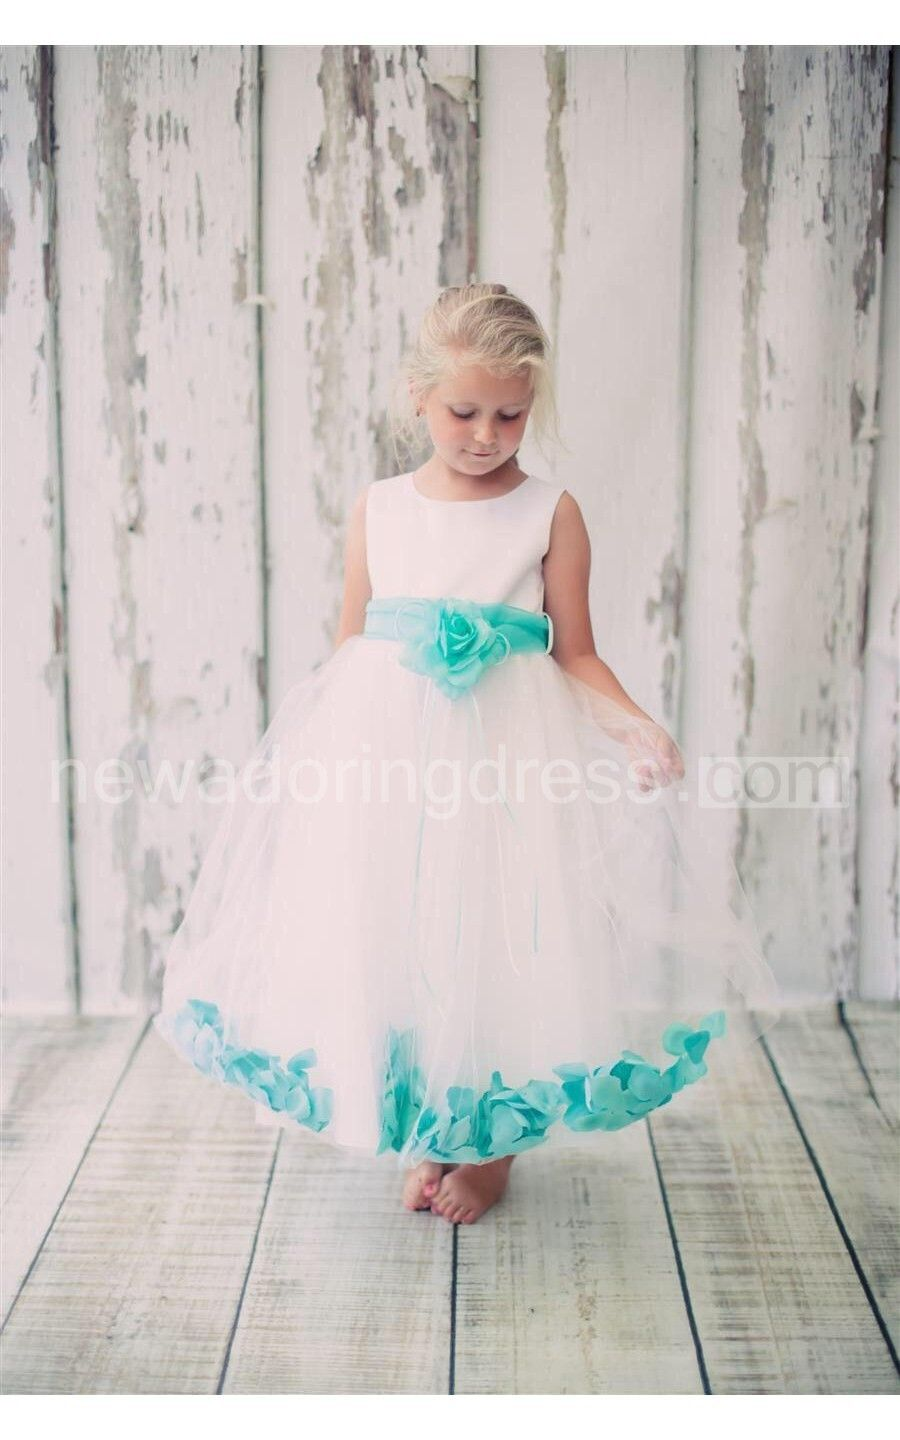 Satin Bust Pleated A Line Tulle Dress With Floating Petals And